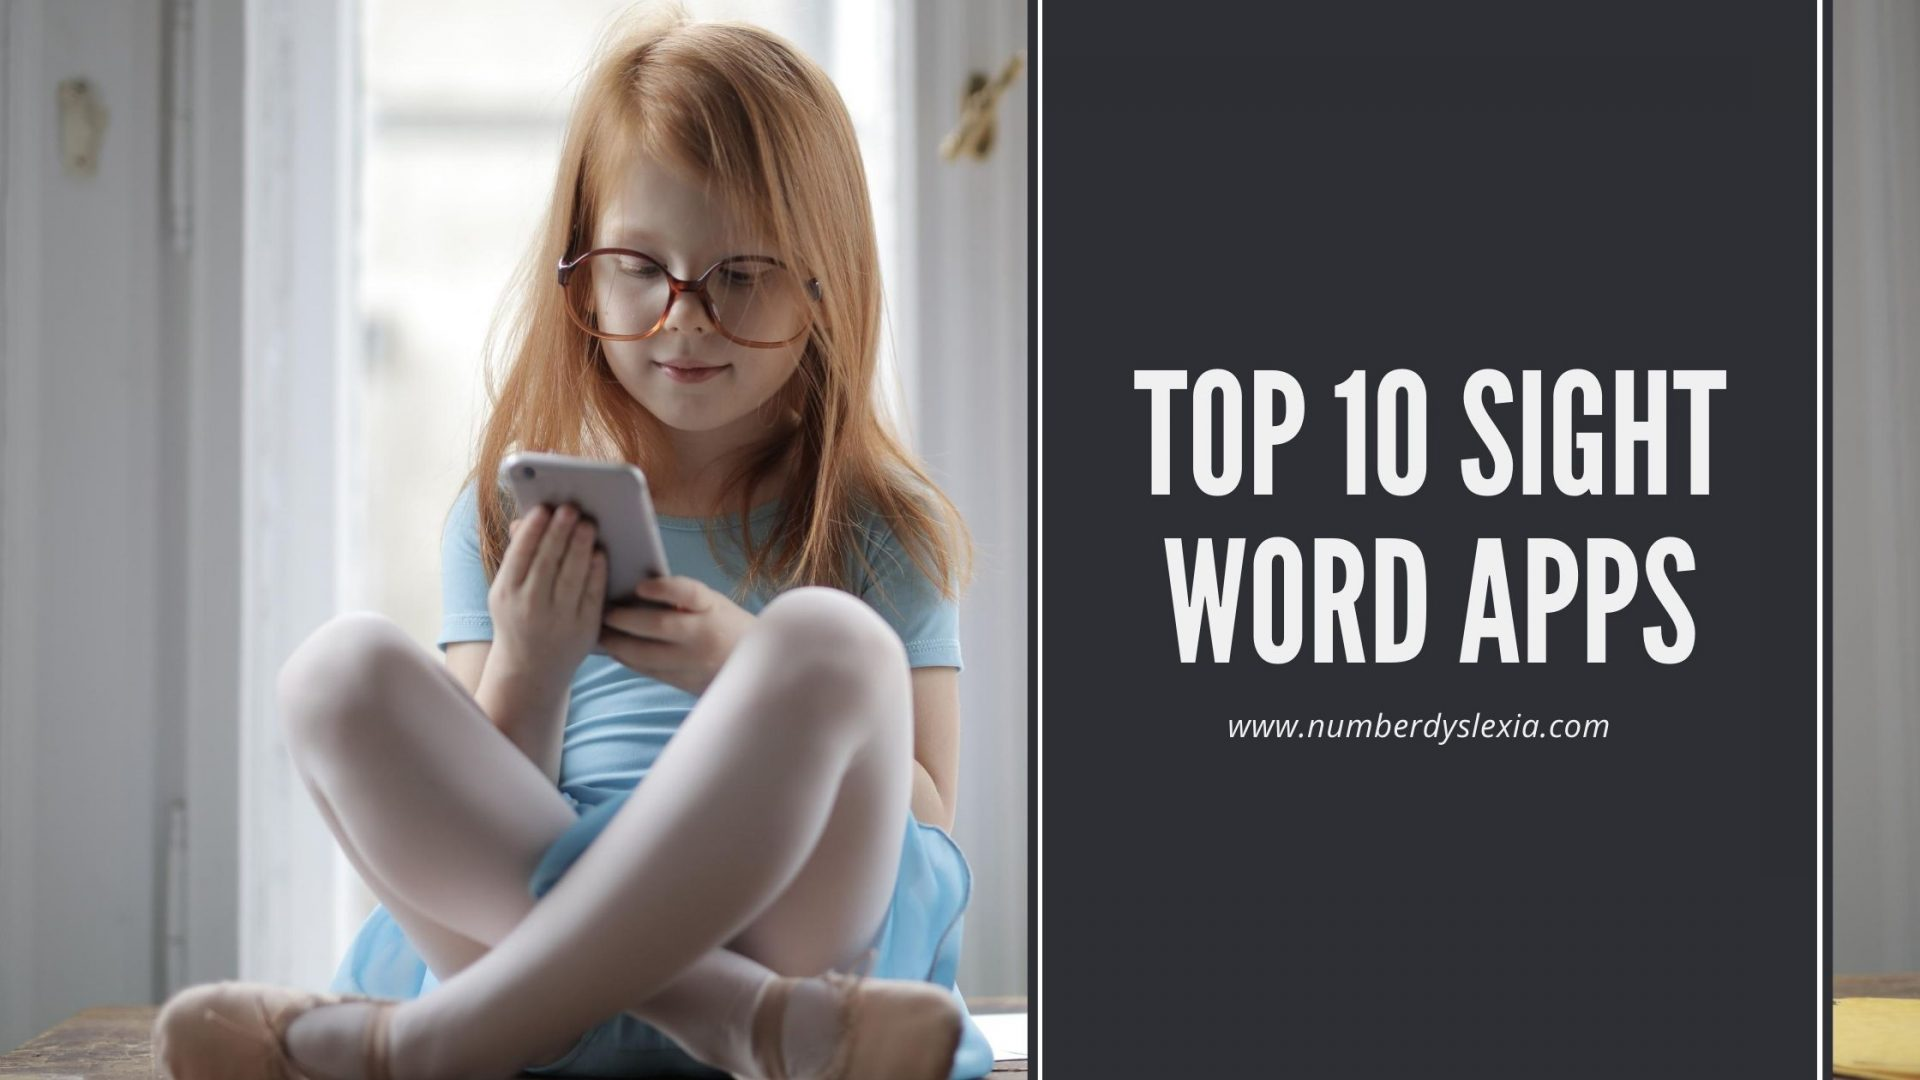 List of top 10 sight word apps